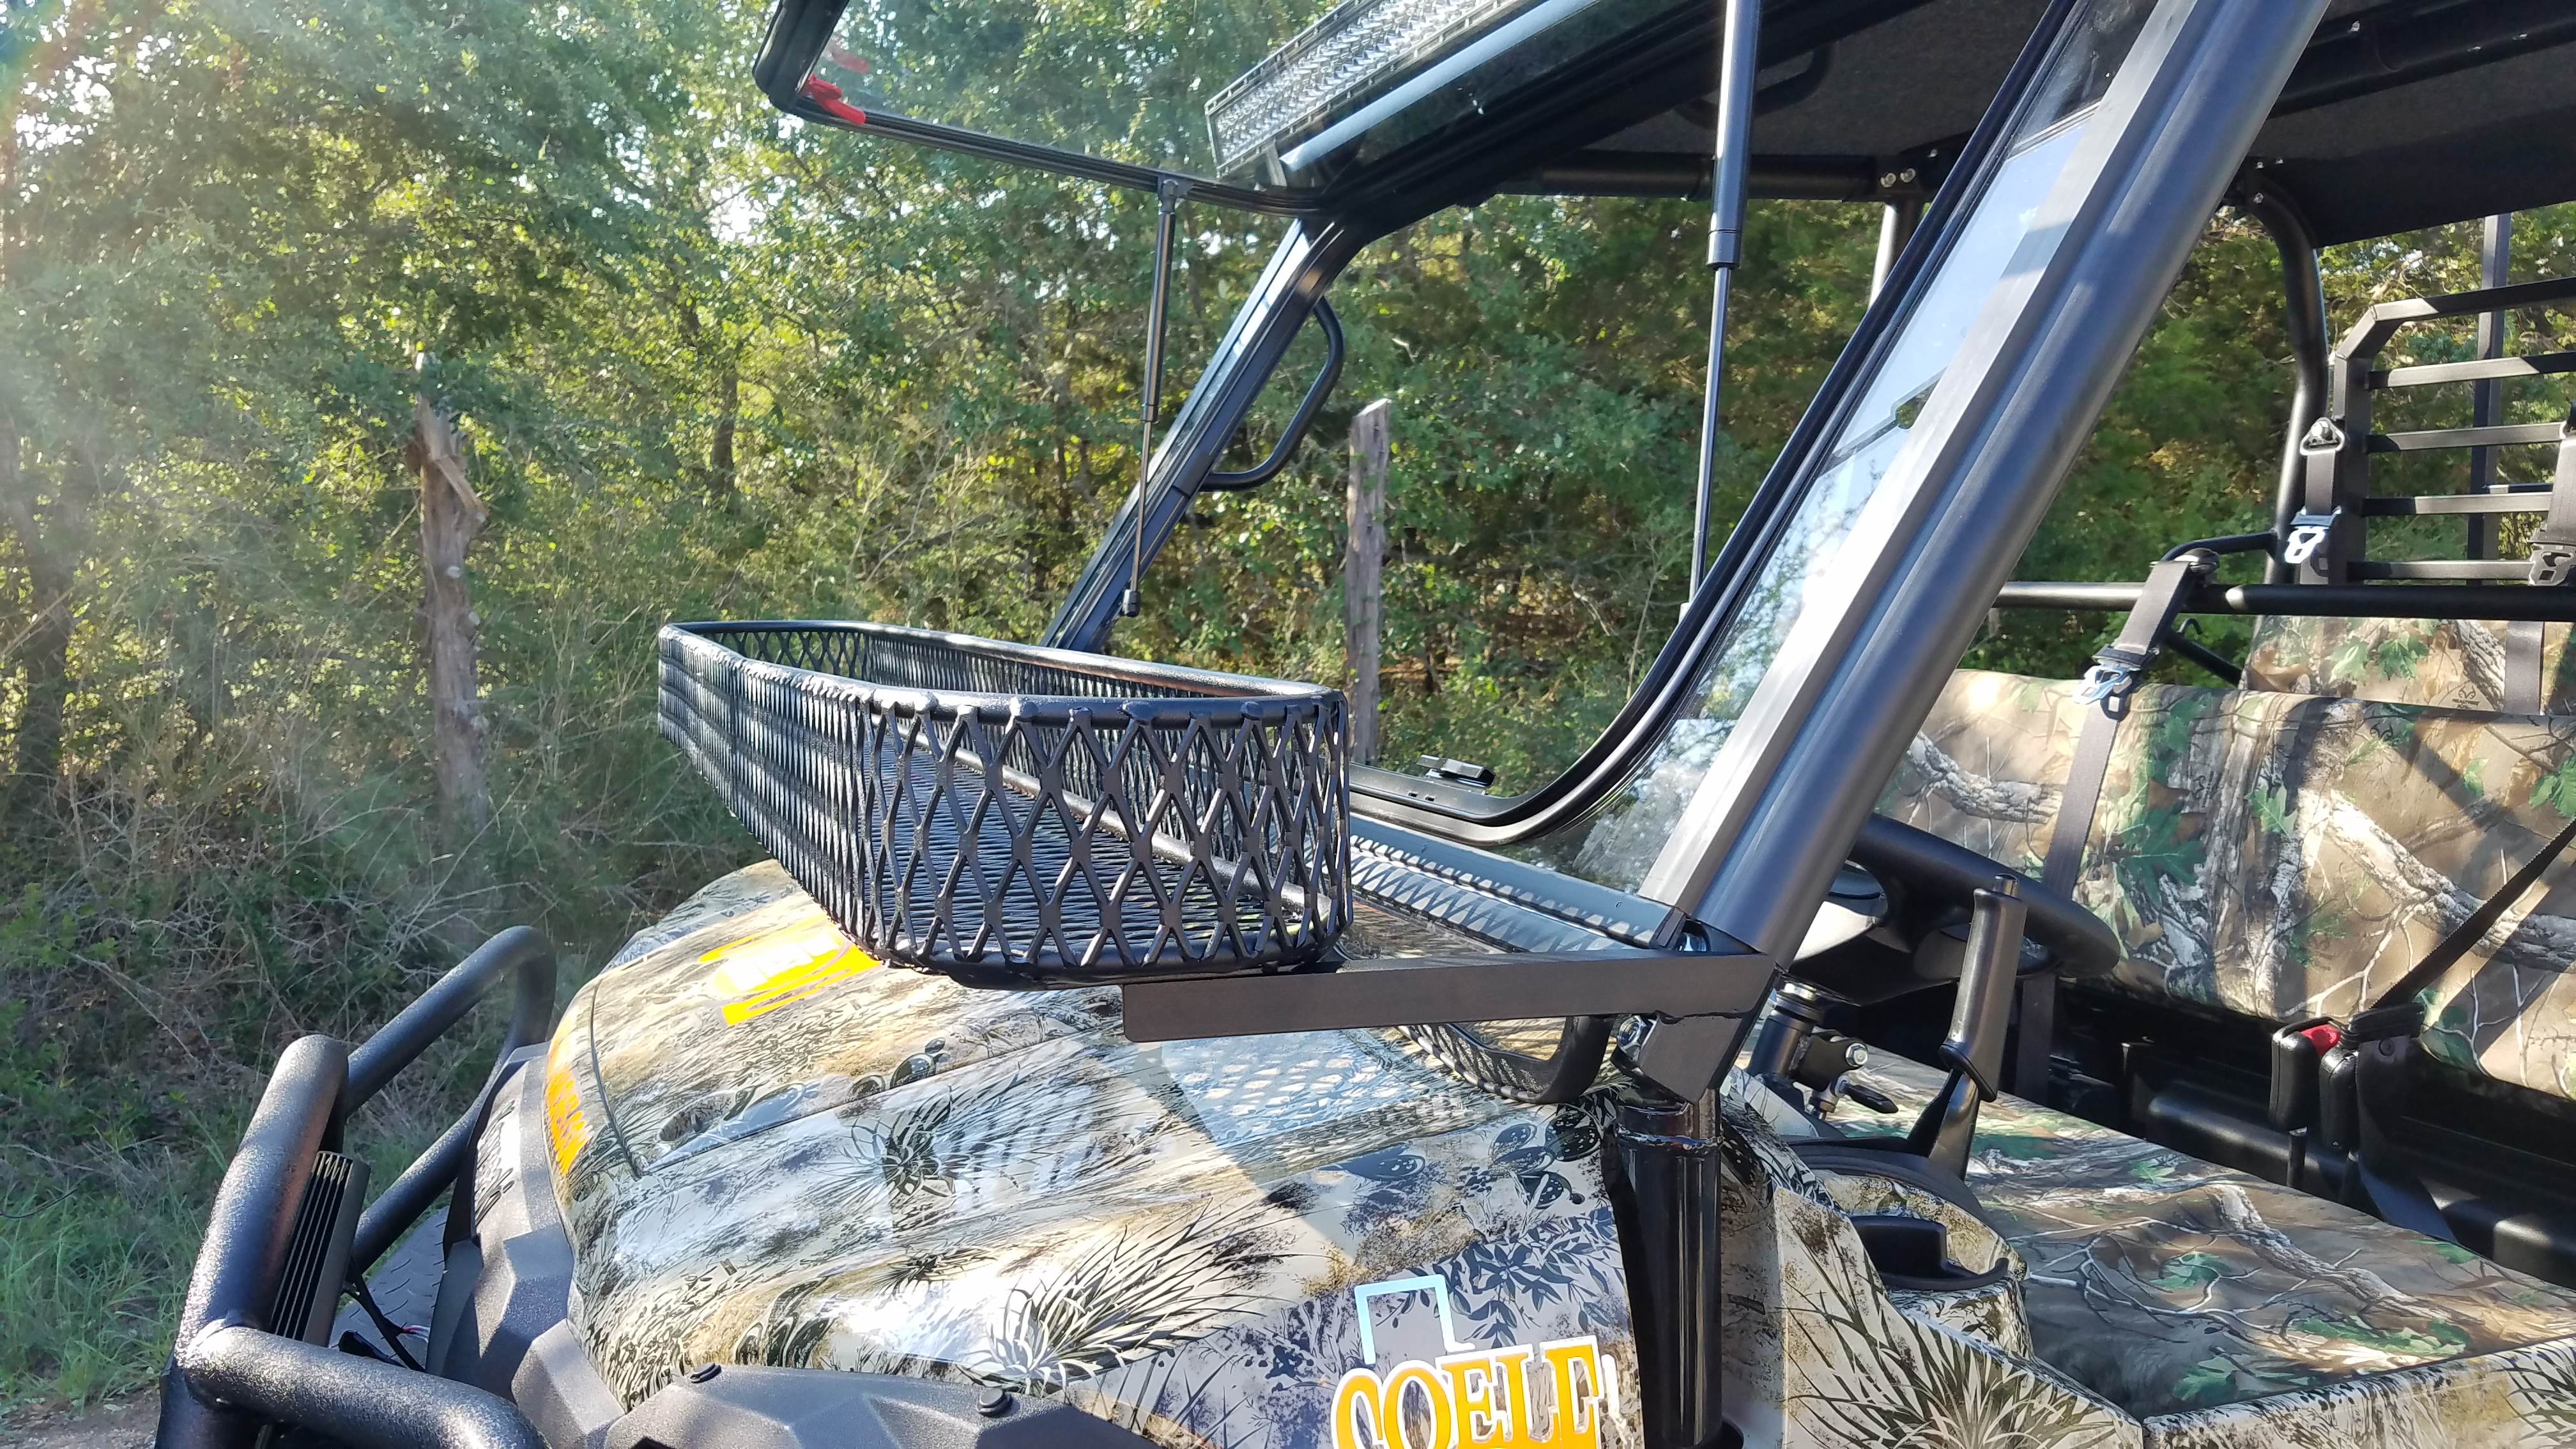 kawasaki-mule-pro-front-roll-bar-basket-rack-windshield.jpg